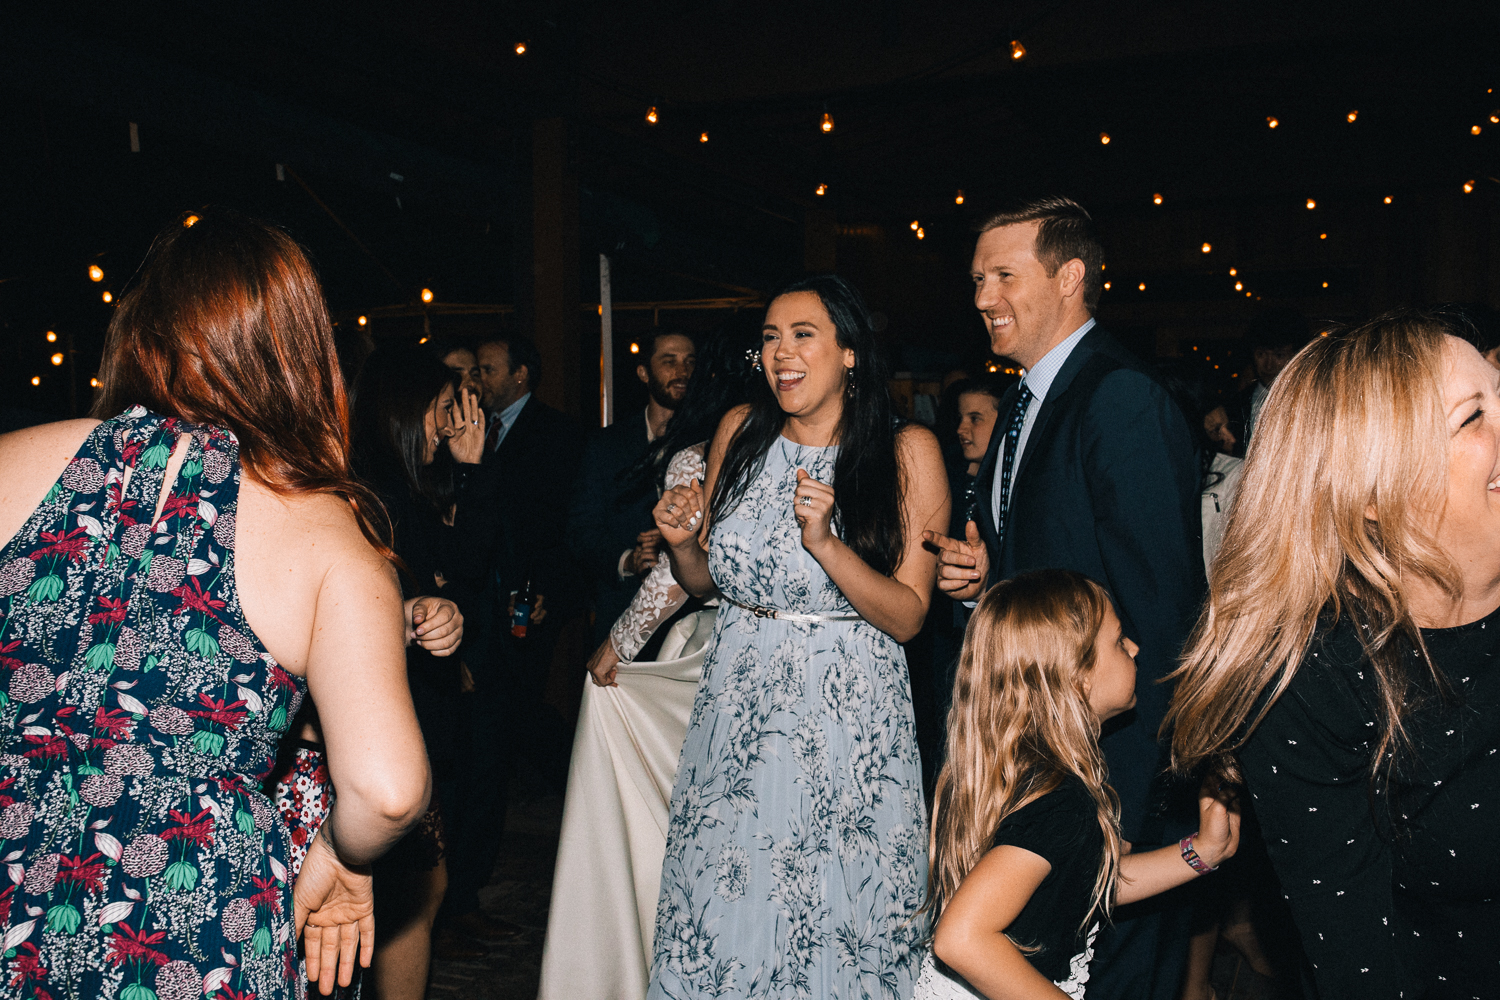 2019_05_ 182019.05.19 Lisa + Eddie South Bay Wedding Blog Photos Edited For Web 0153.jpg